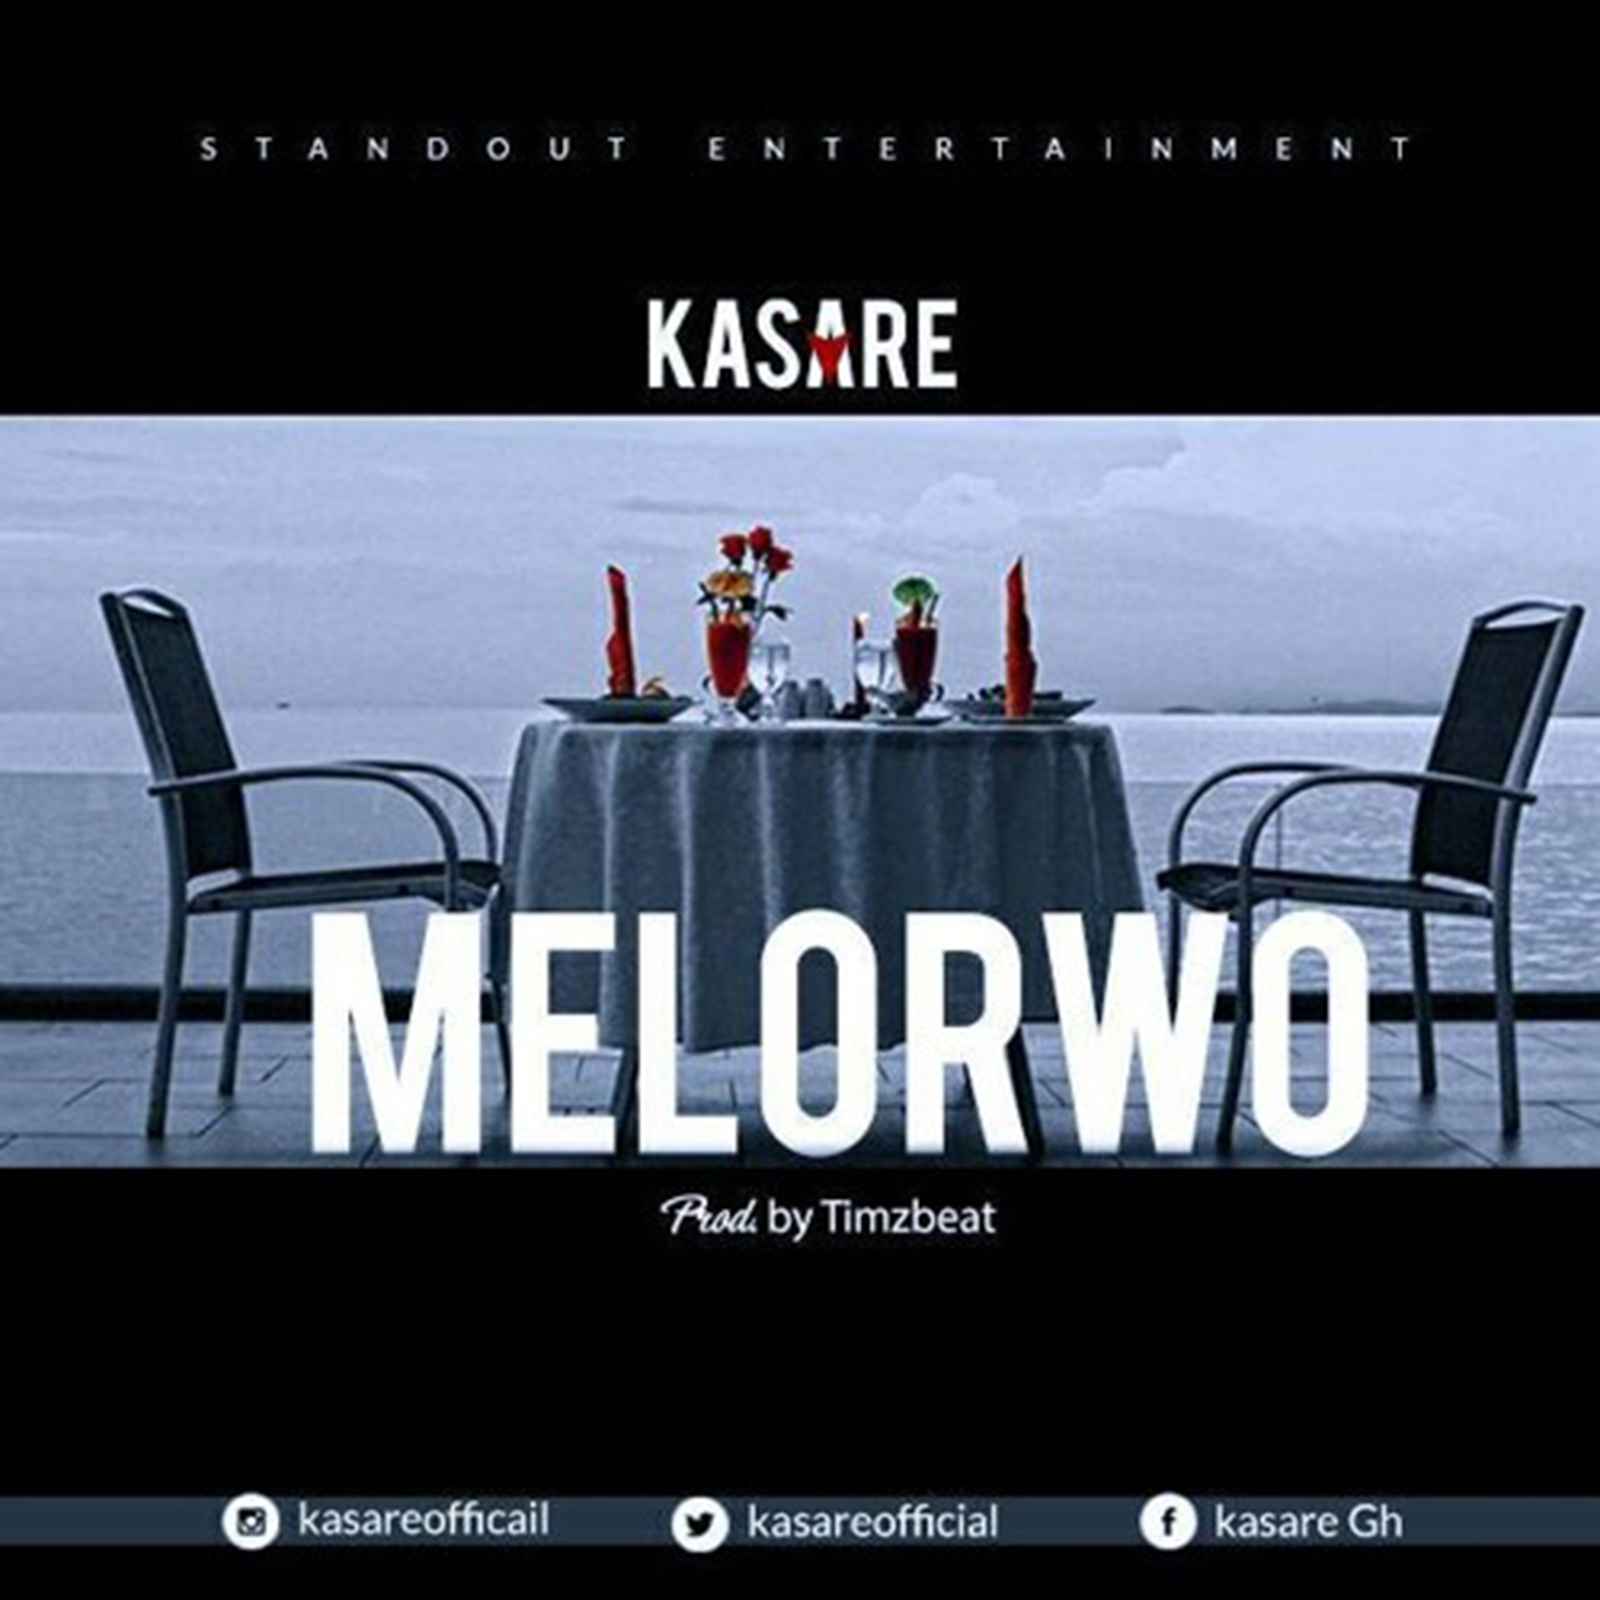 Melorwo by Kasare